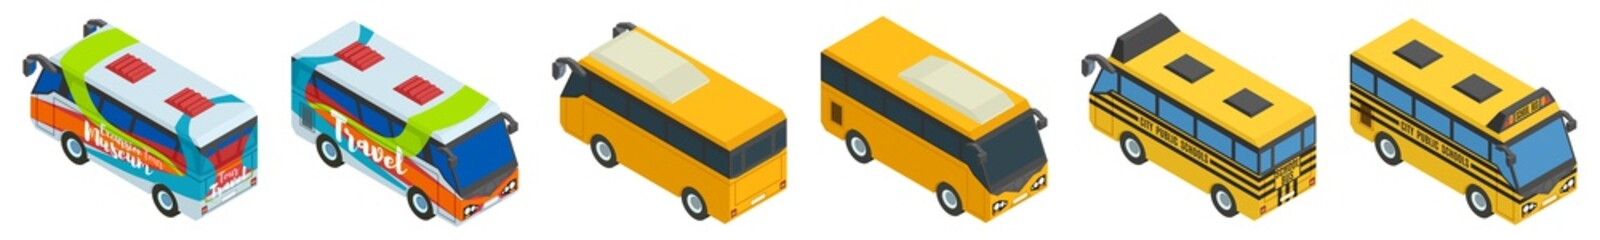 large selection of school tourist and city bus